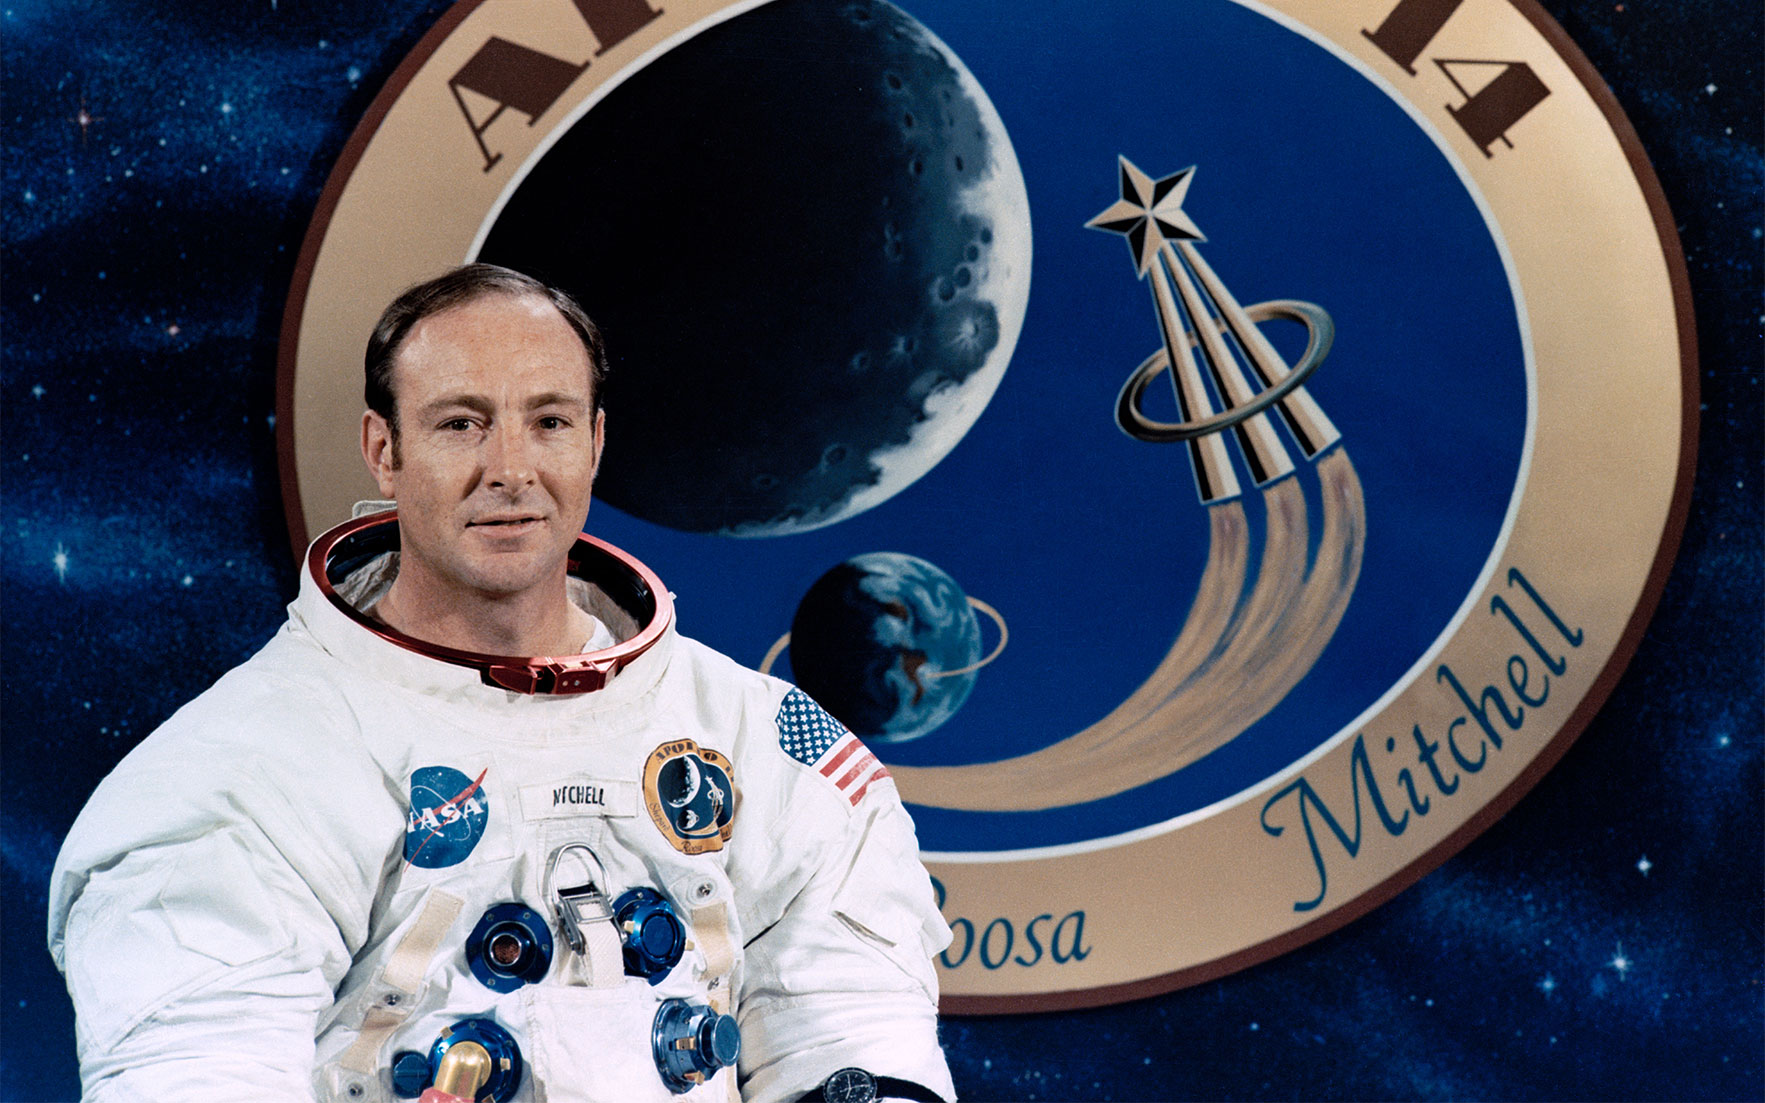 Photograph (detail) of Apollo 14 astronaut Edgar Mitchell in front of a graphic of the mission patch.  Photograph NASA. A copy of the photograph is offered as part of the lot